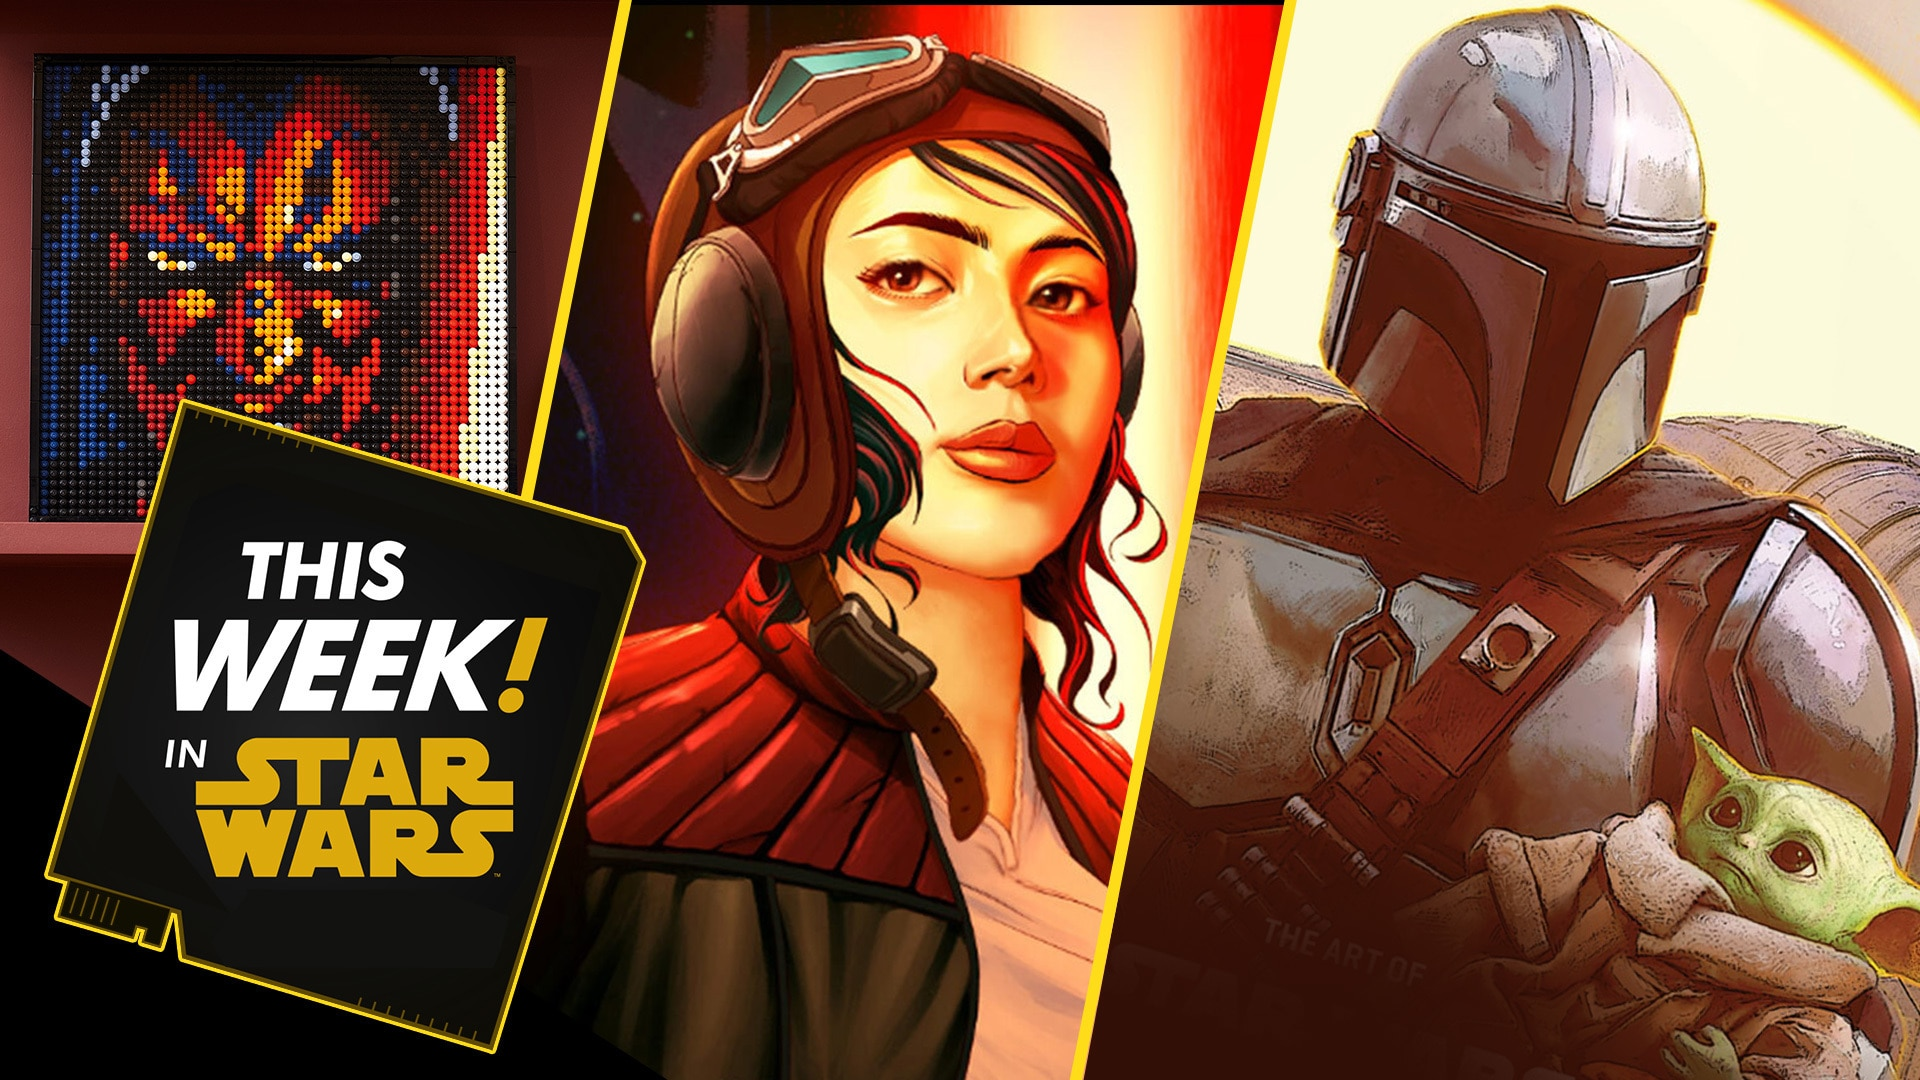 San Diego Comic-Con Exclusives, Brand New LEGO Art, and More!